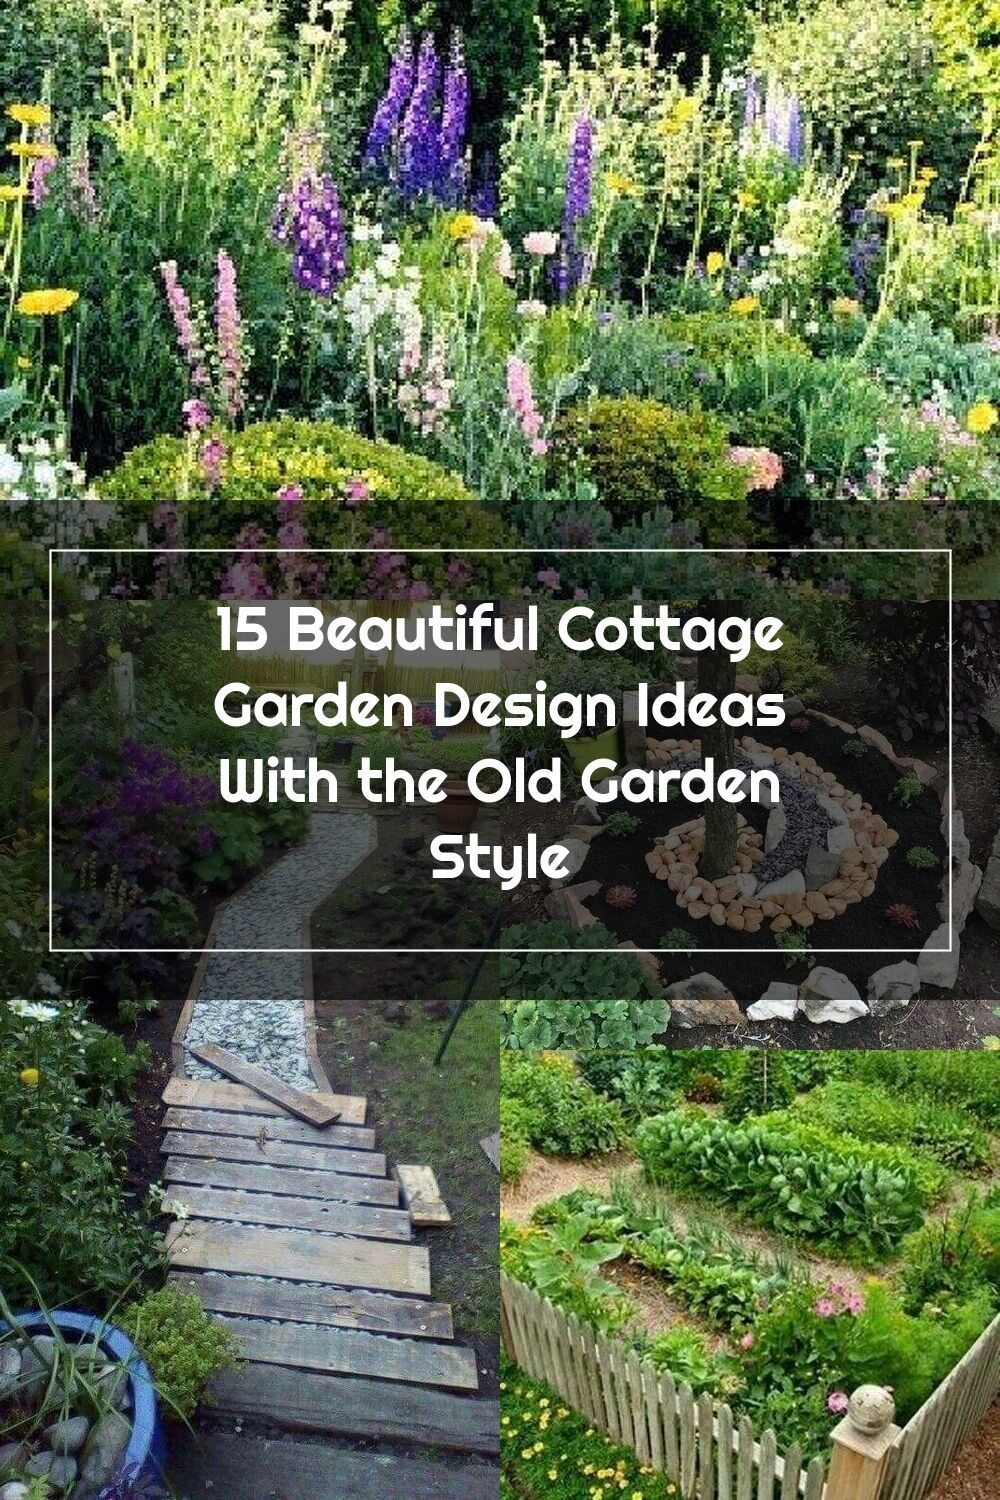 15 Beautiful Cottage Garden Design Ideas With The Old Garden Style Homely In 2020 Cottage Garden Design Cottage Garden Garden Design